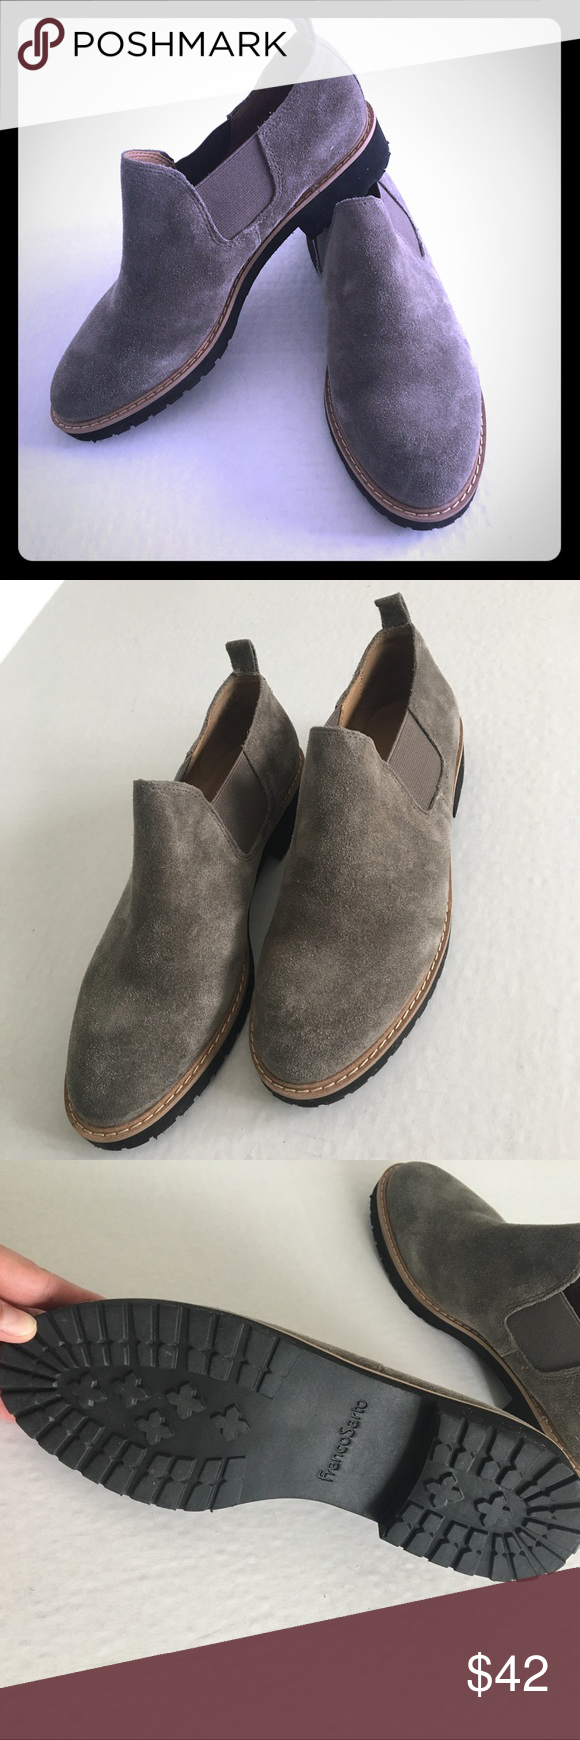 2a00dc1237d6 New franco sarto cole booties brand new with box franco png 580x1740 Franco  sarto rubber soles